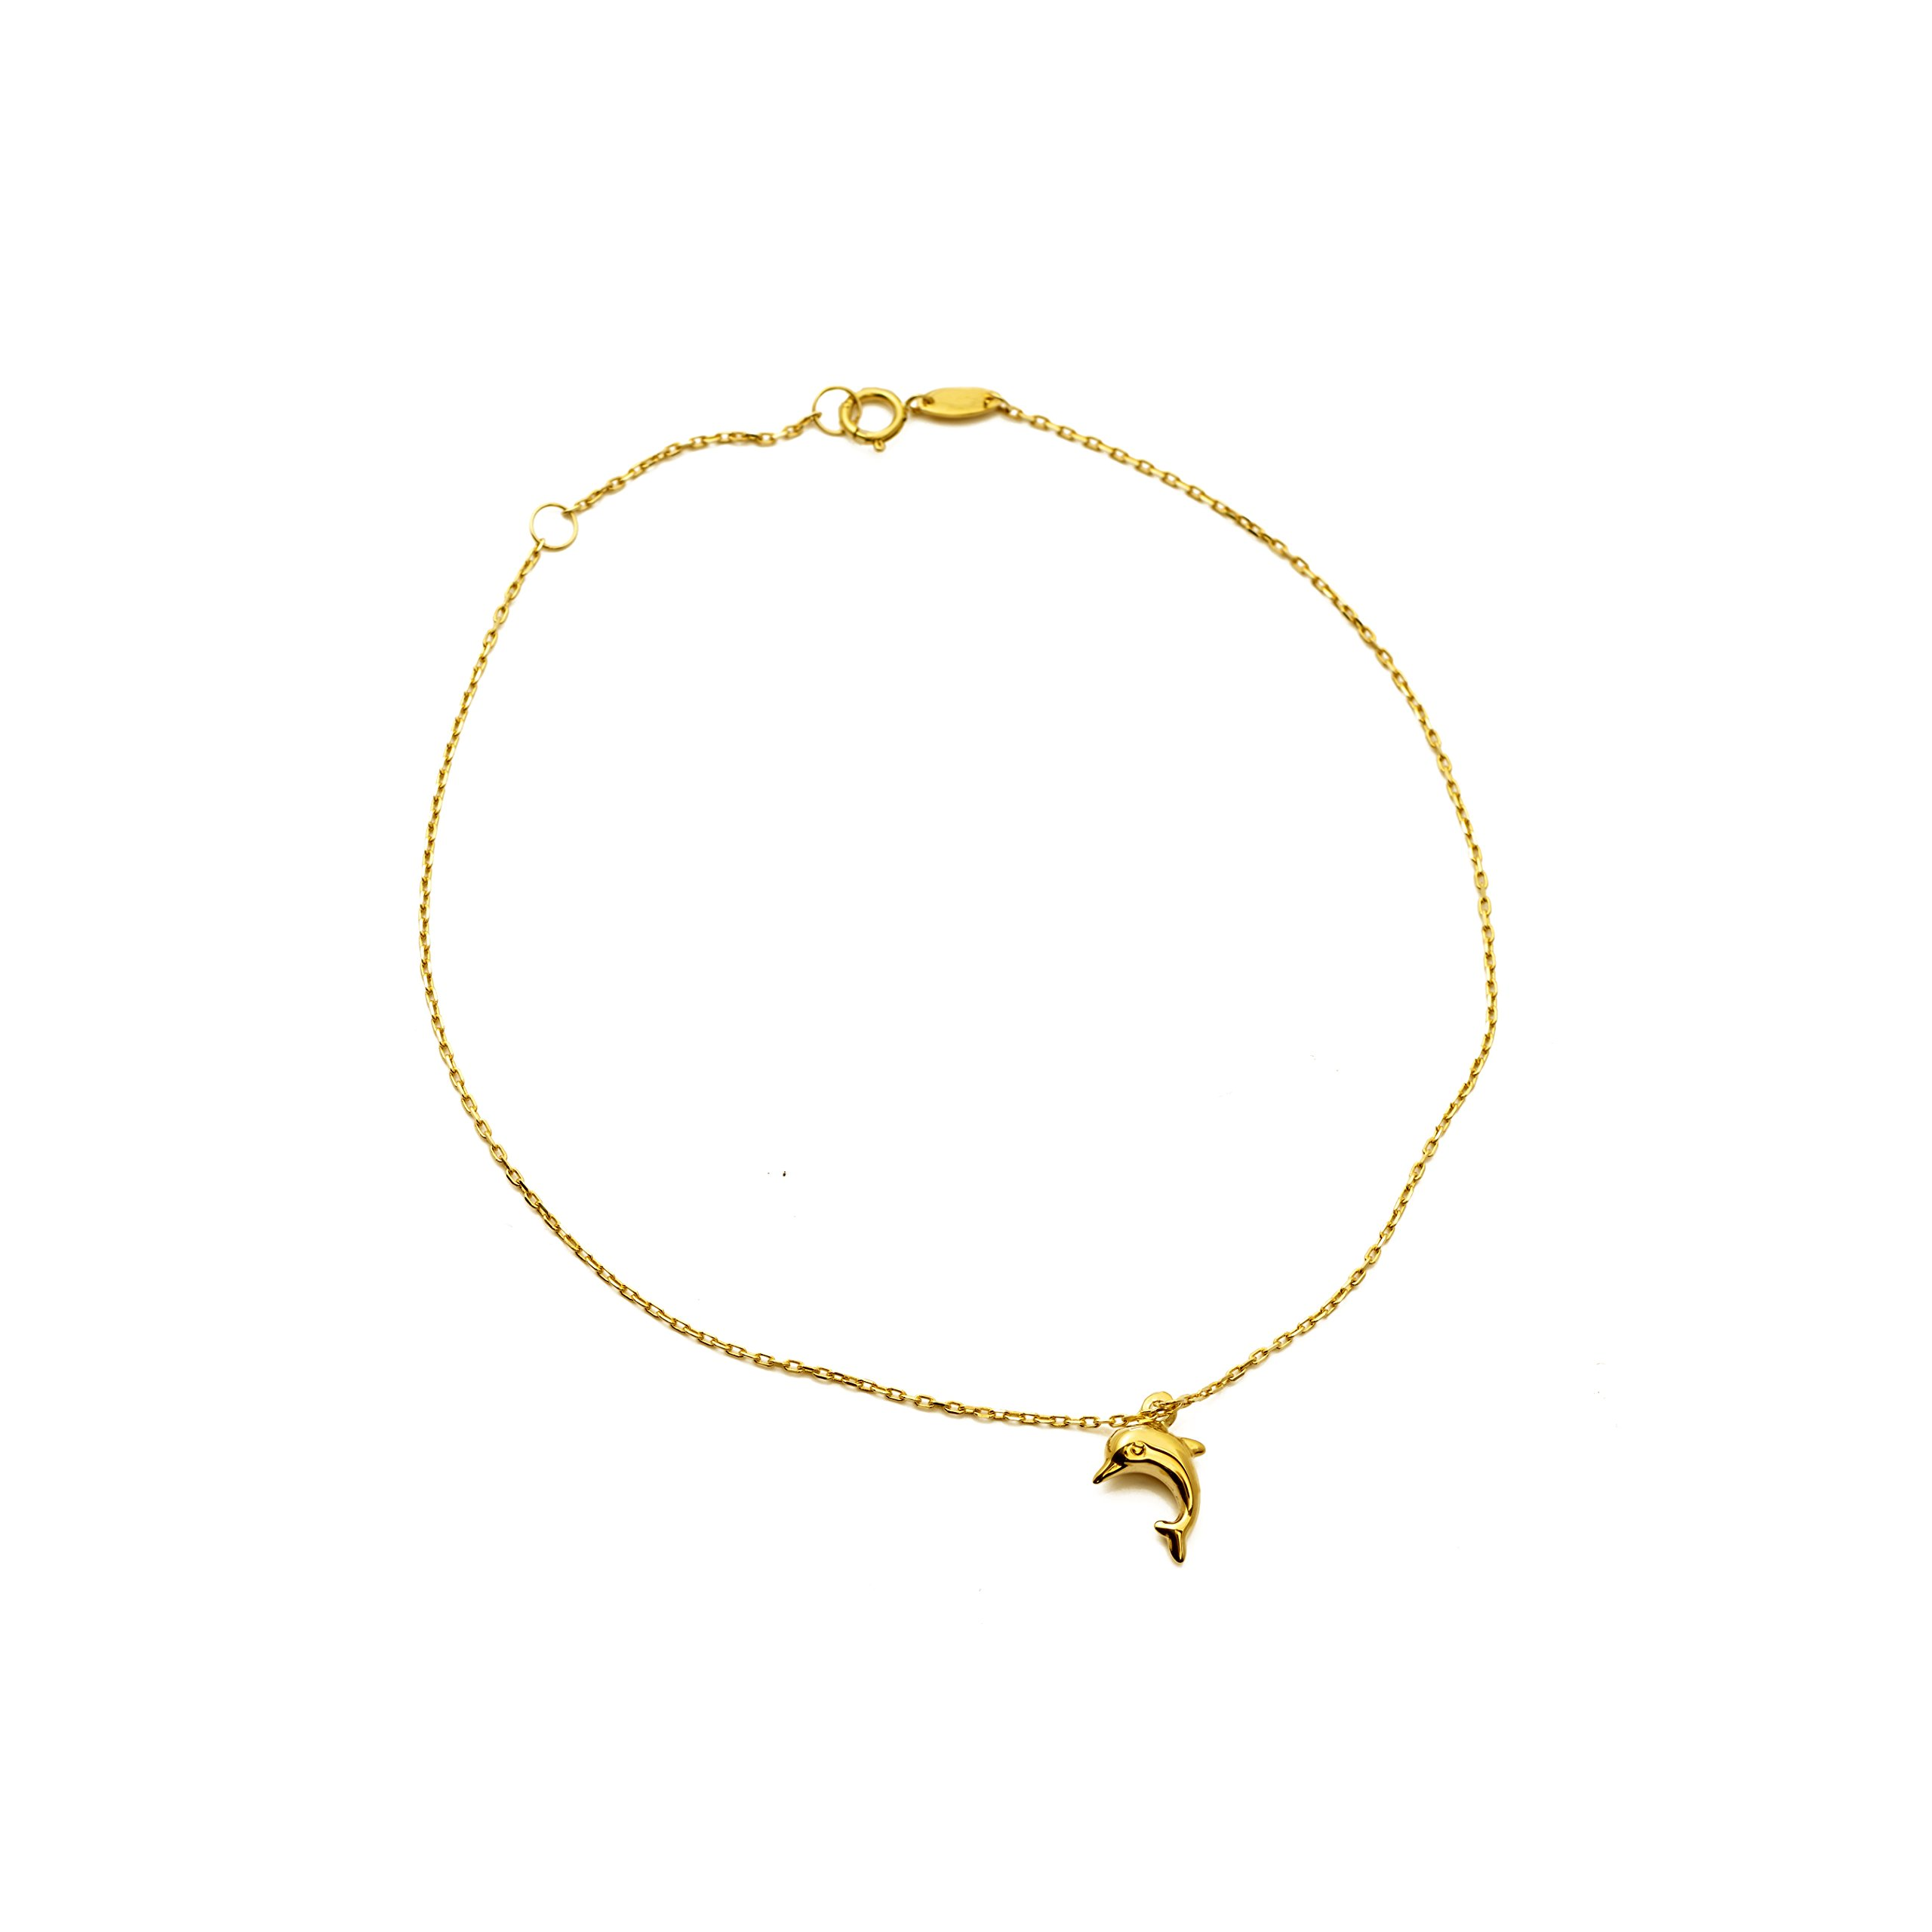 LoveBling 10K Yellow Gold .50mm Diamond Cut Rolo Chain w/Dolphin Charm Anklet Adjustable 9'' to 10'' (#54)